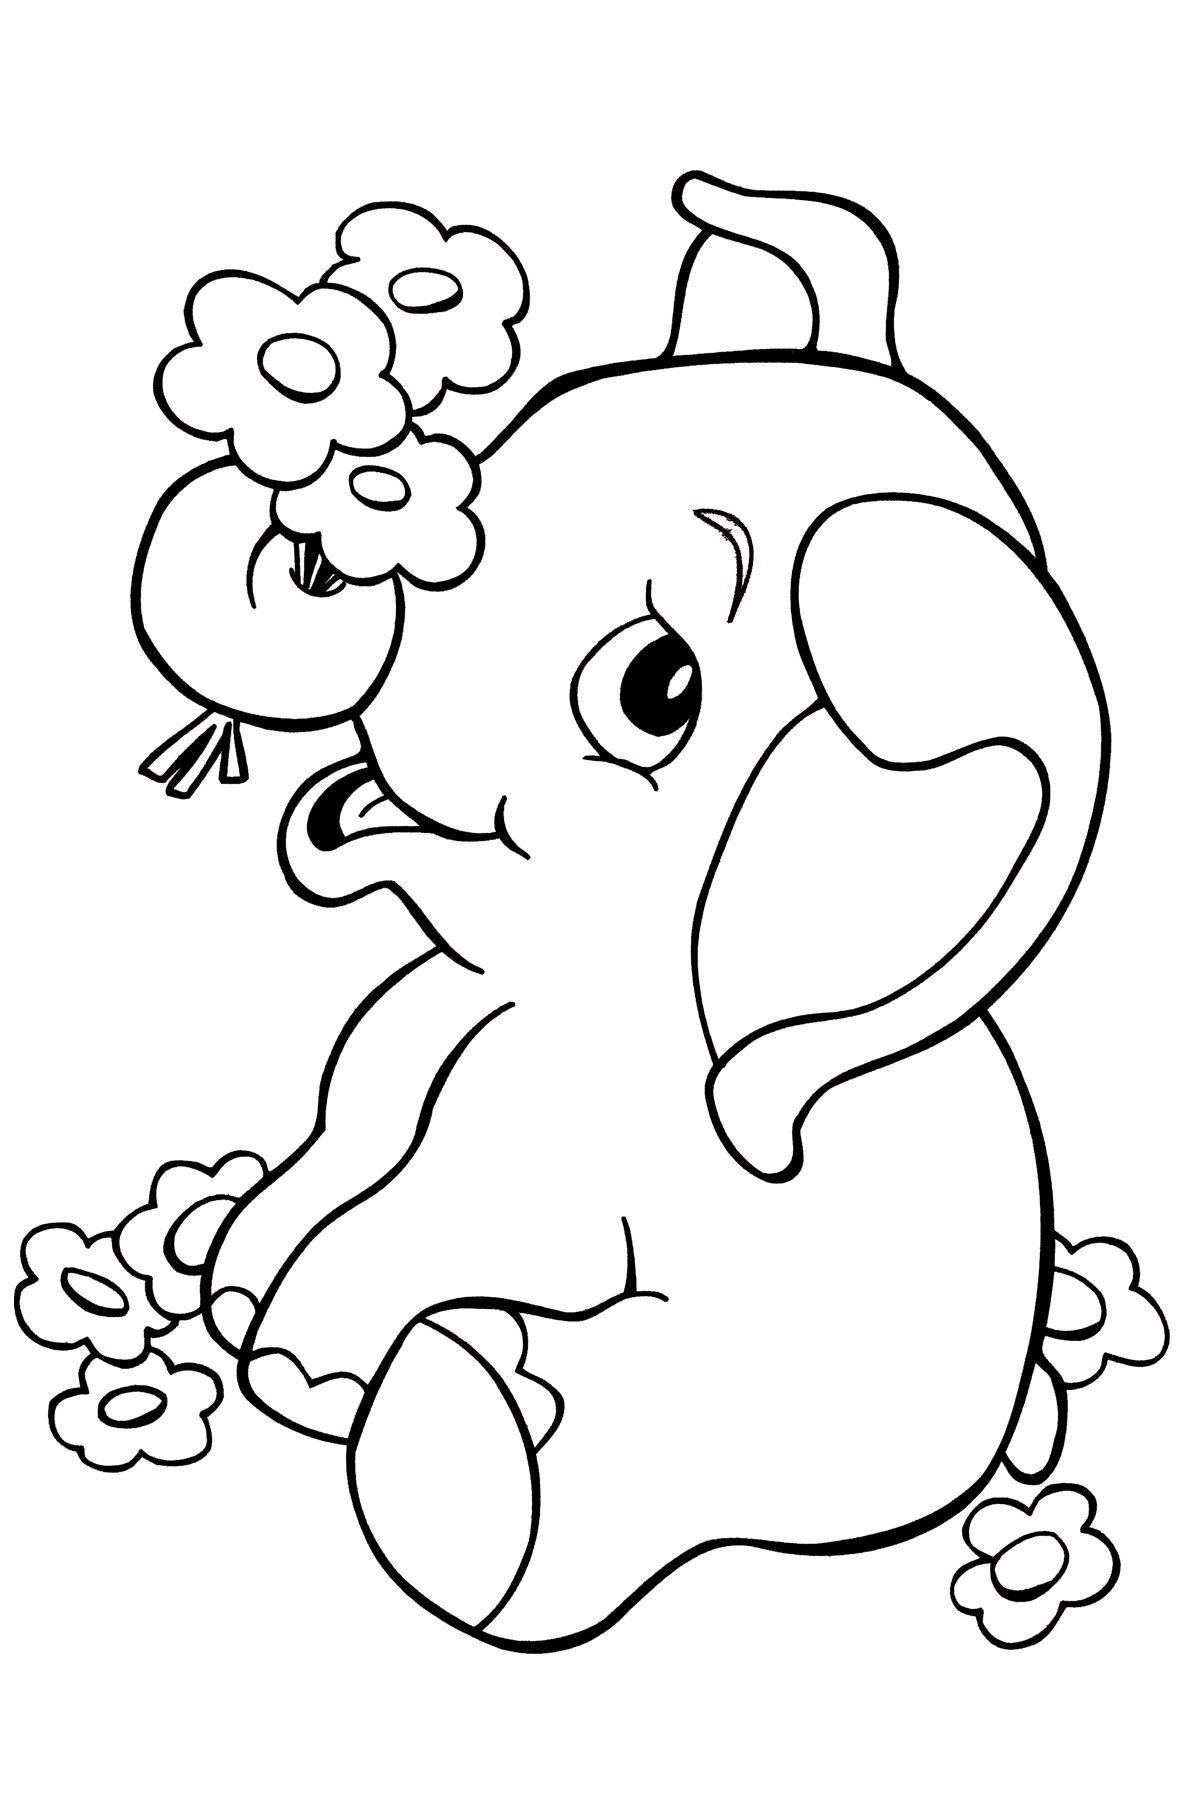 Baby Elephant Coloring Pages For Kindergarten Elephant Coloring Page Jungle Coloring Pages Coloring Books